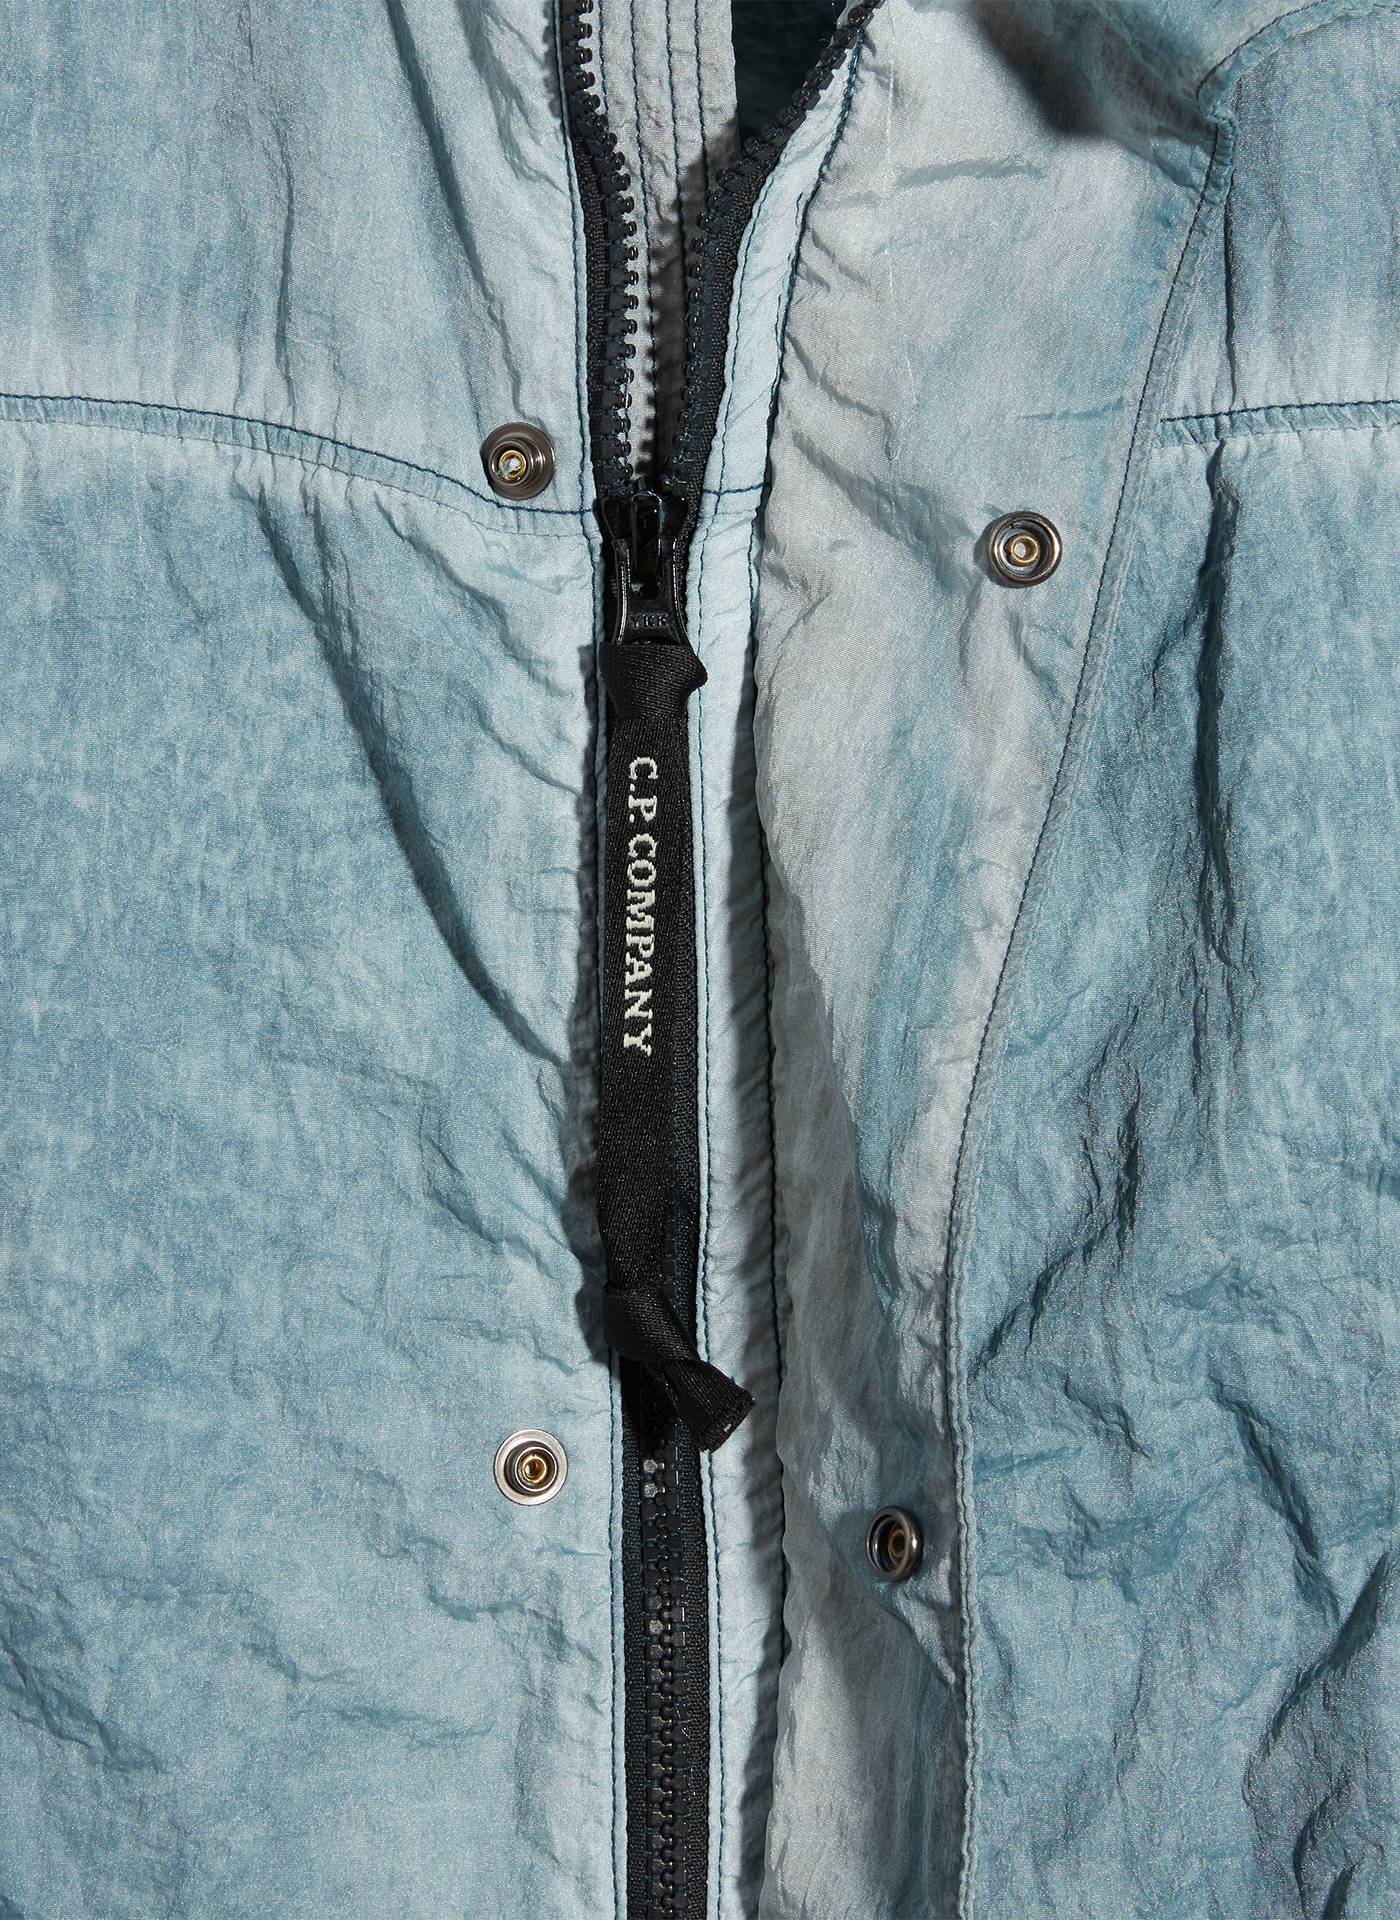 Detail shot of a black zipper of a washed out blue C.P. Company jacket